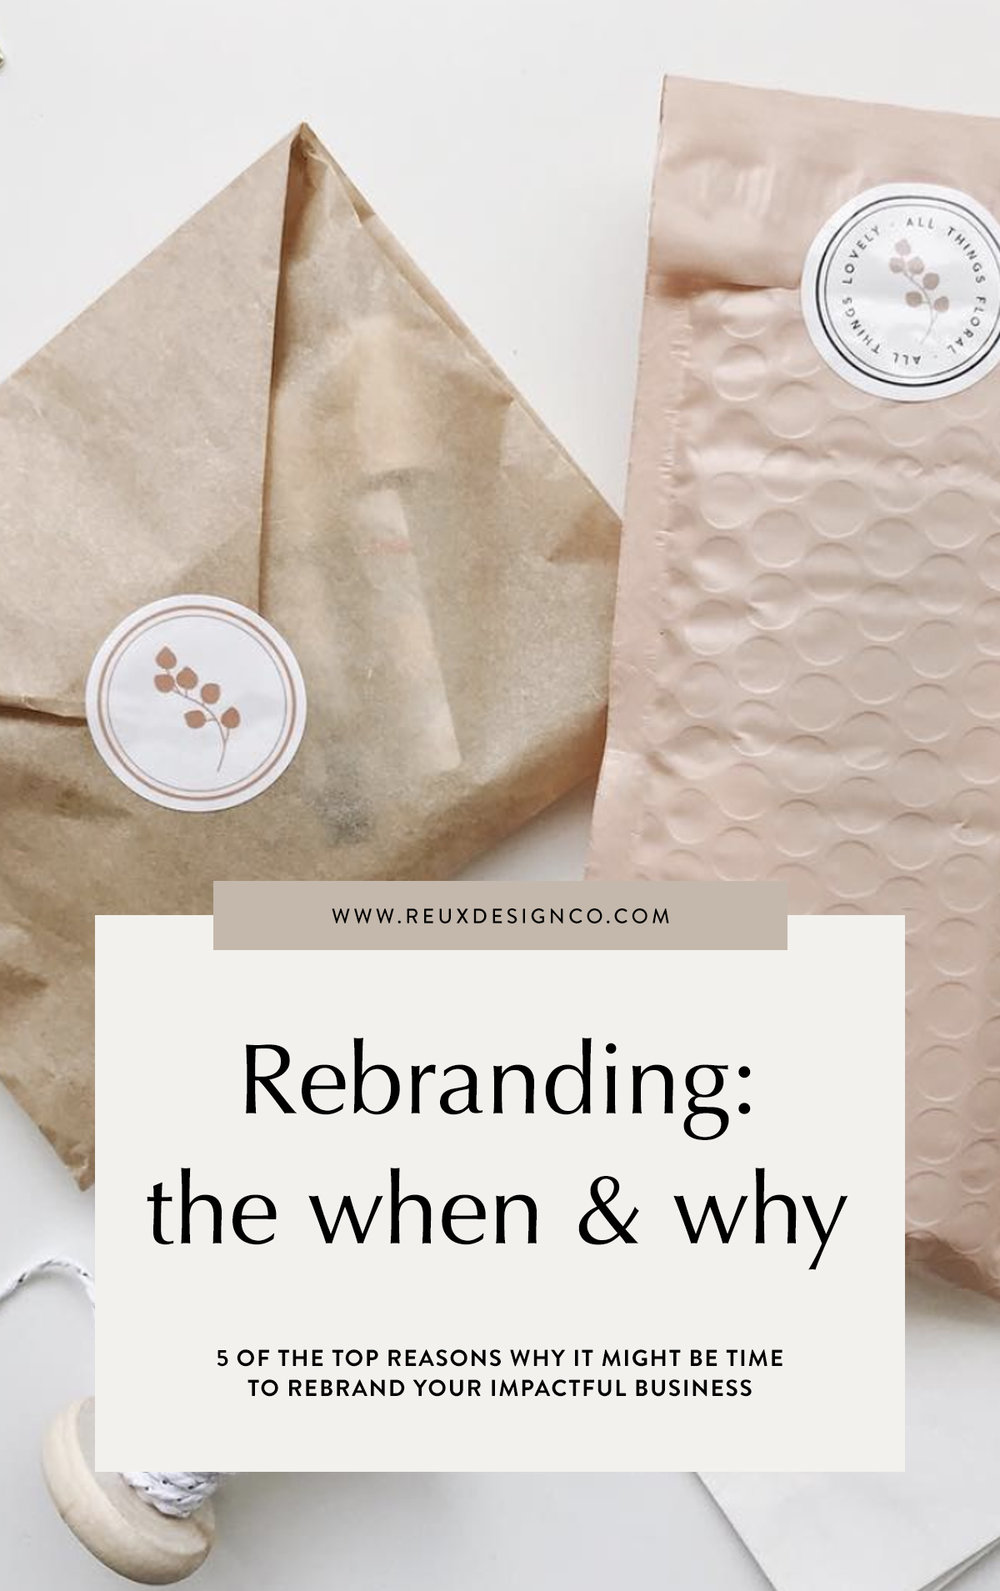 Have you been thinking about rebranding your impactful, sustainable or ethical business? Here are the top 5 reasons why now might be a good time to rebrand. | Reux Design Co.